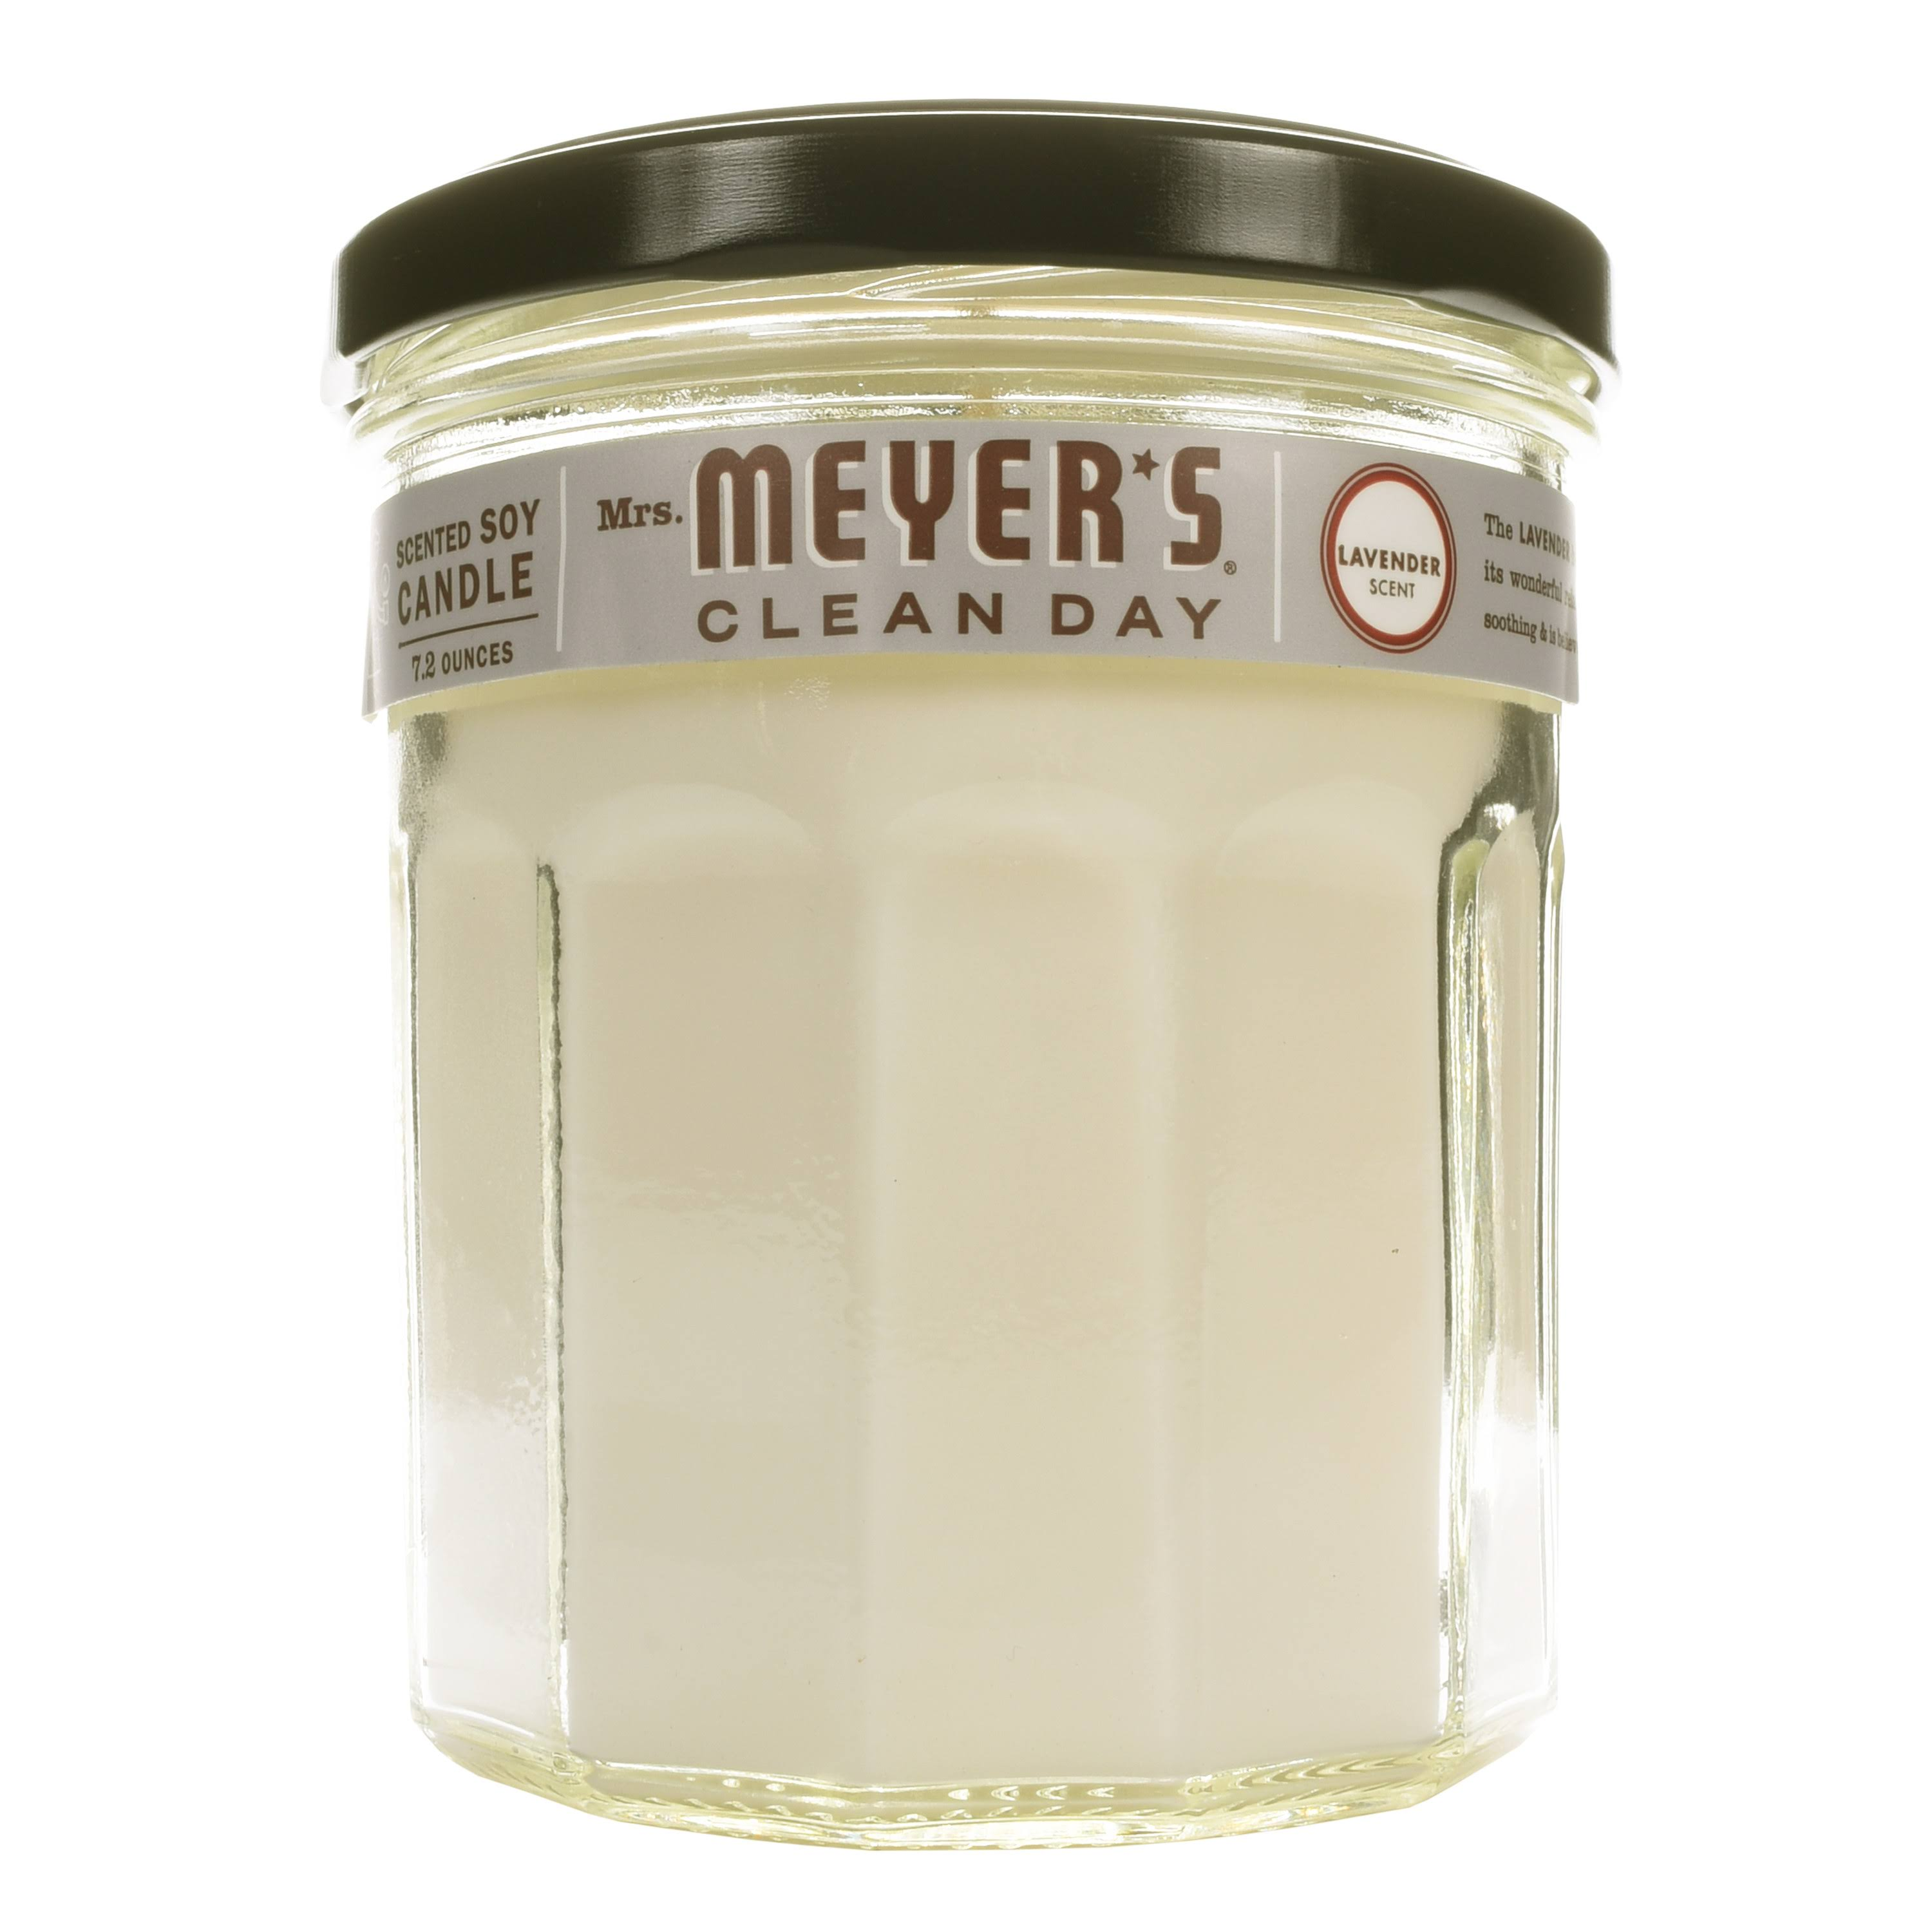 Mrs. Meyers Clean Day Scented Soy Candle - Lavender